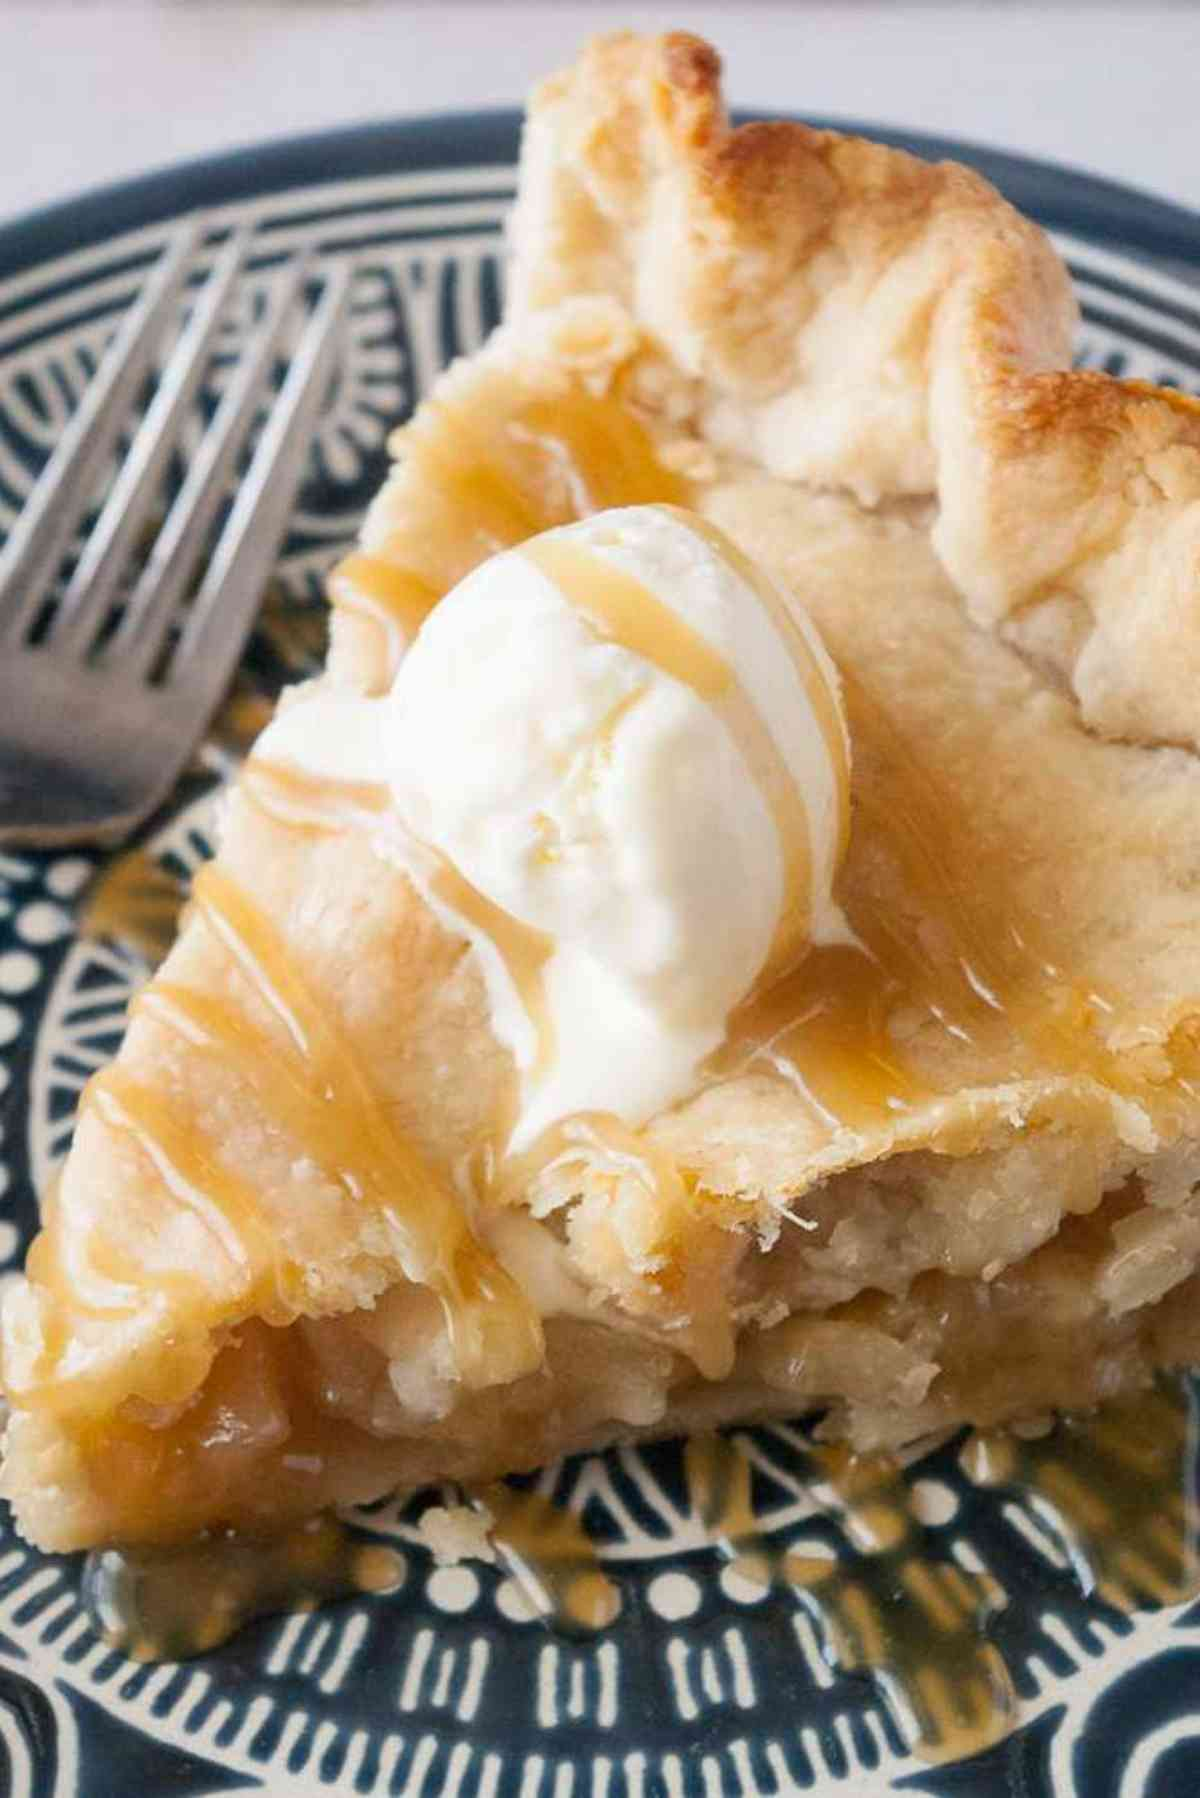 Big slice of the best caramel apple pie with a scoop of vanilla ice cream on top drizzled with extra caramel.